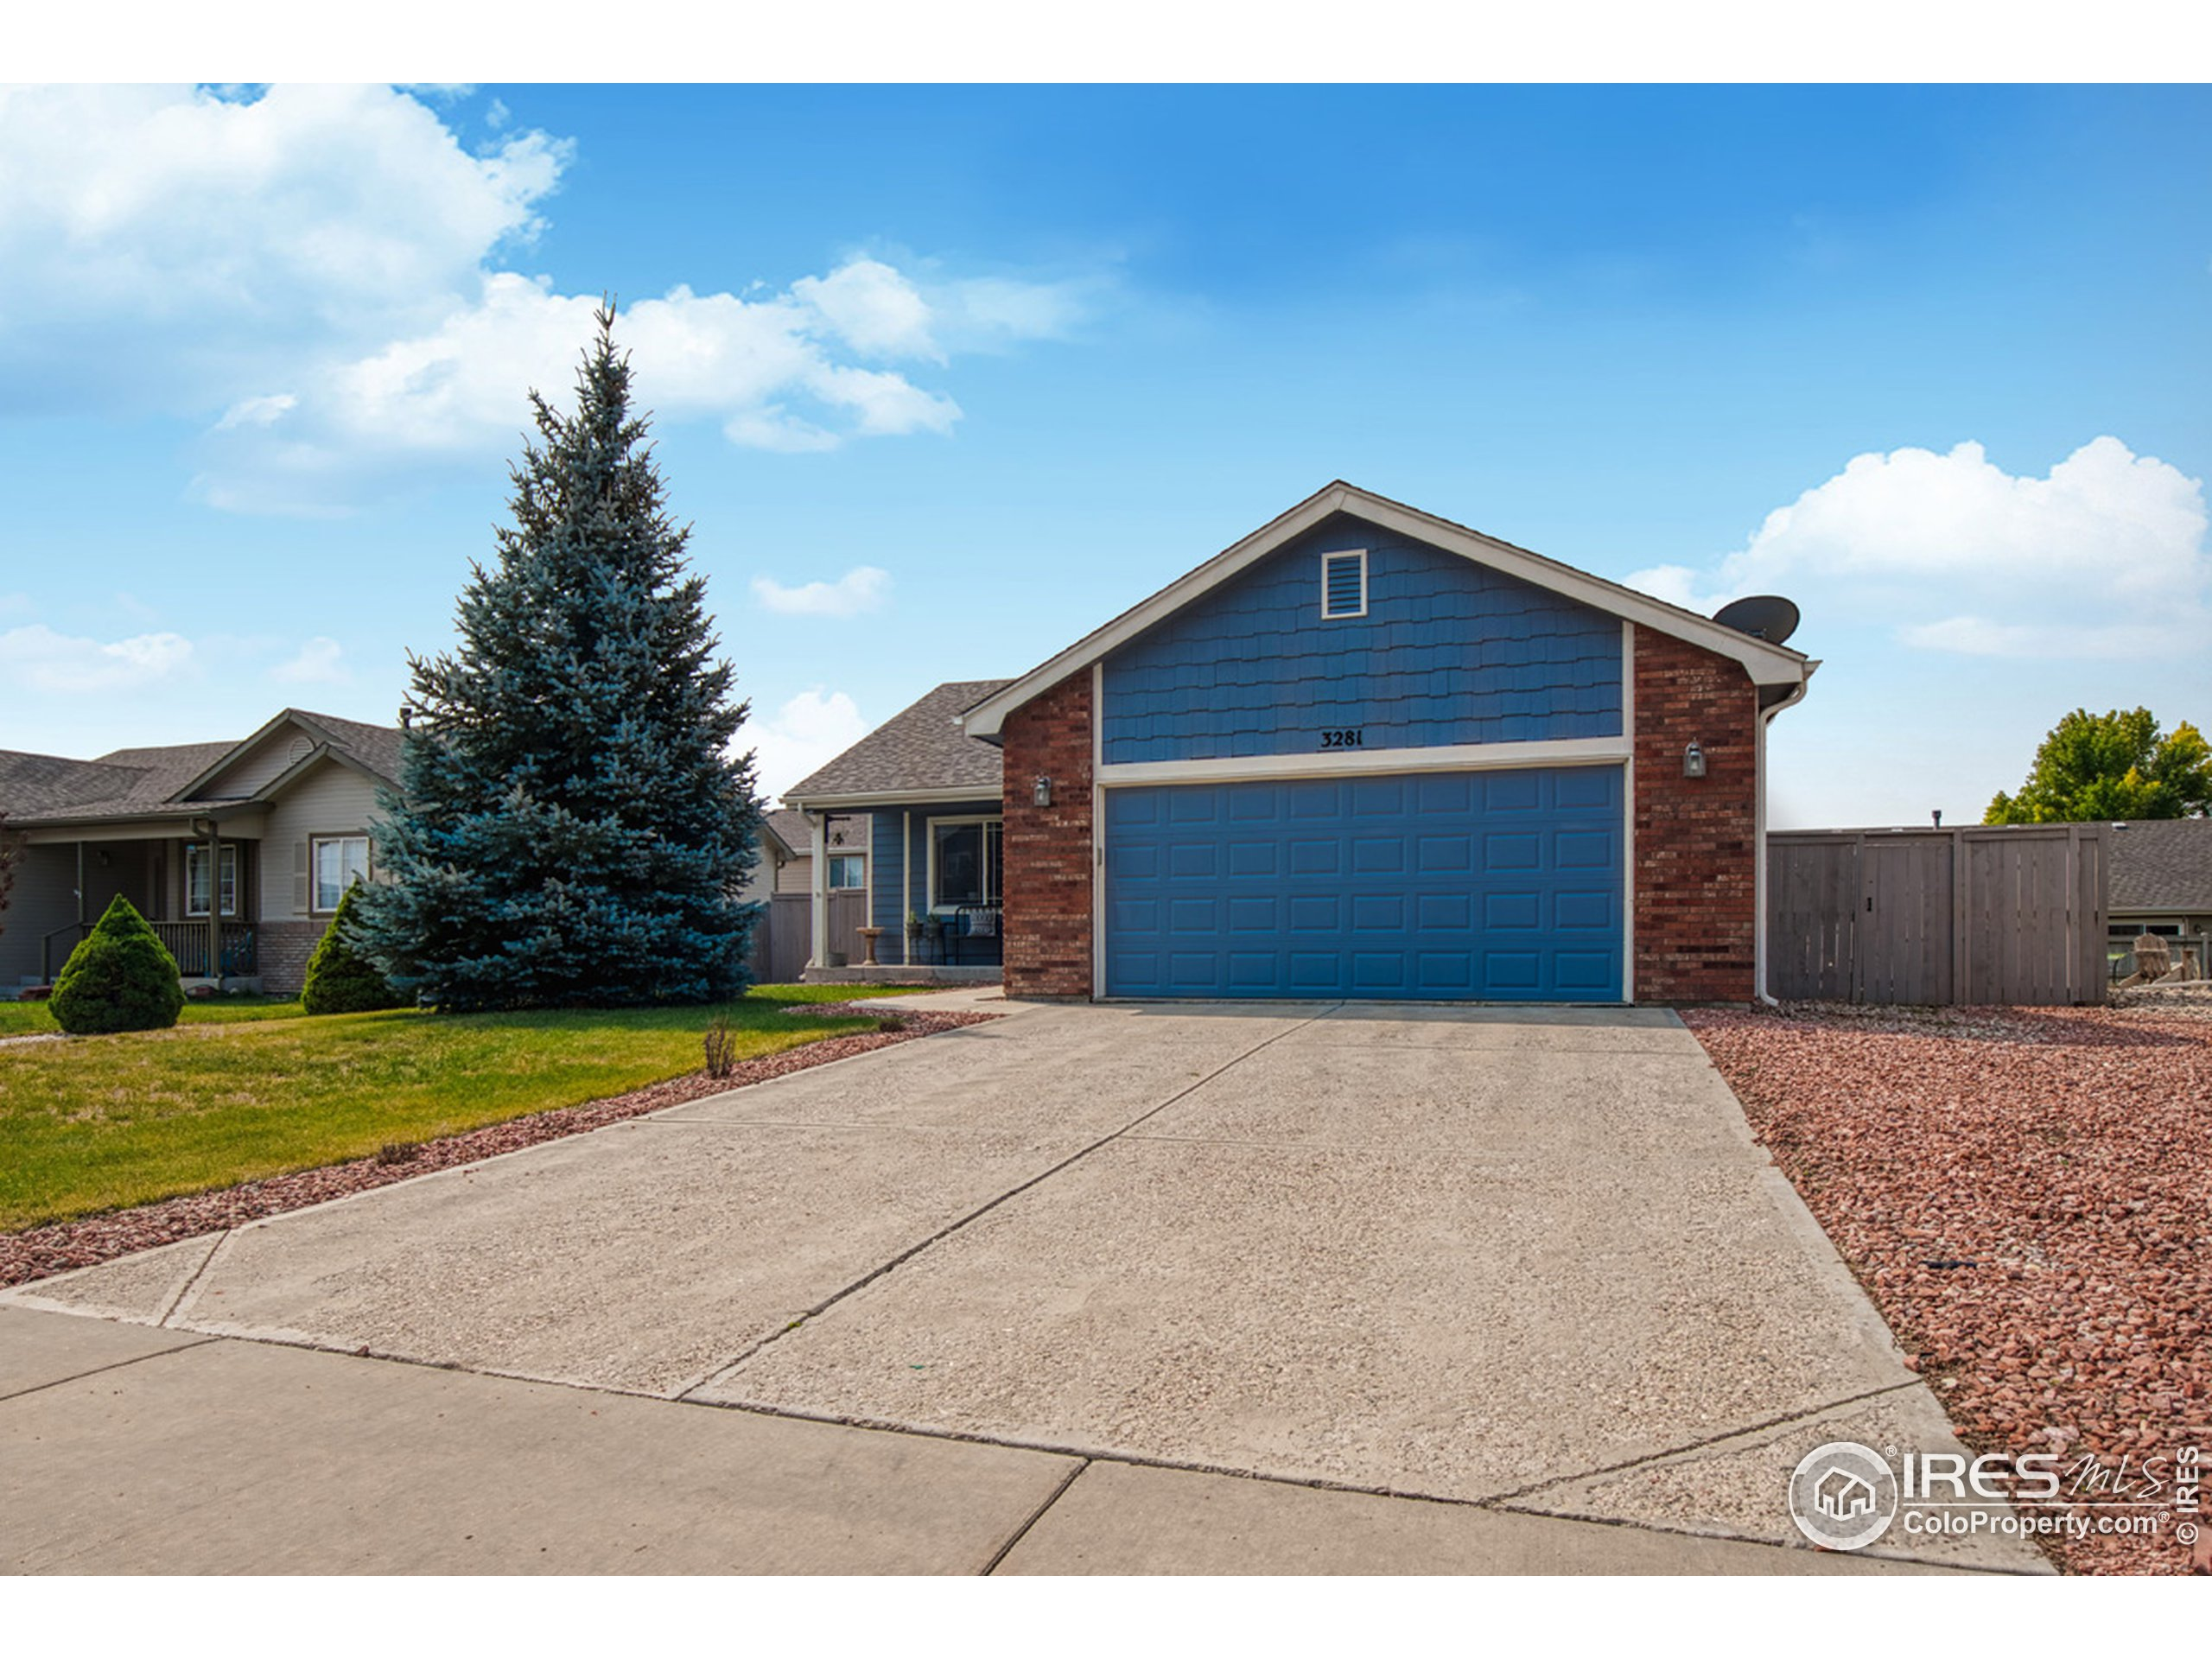 3281 Grizzly Way, Wellington, CO 80549